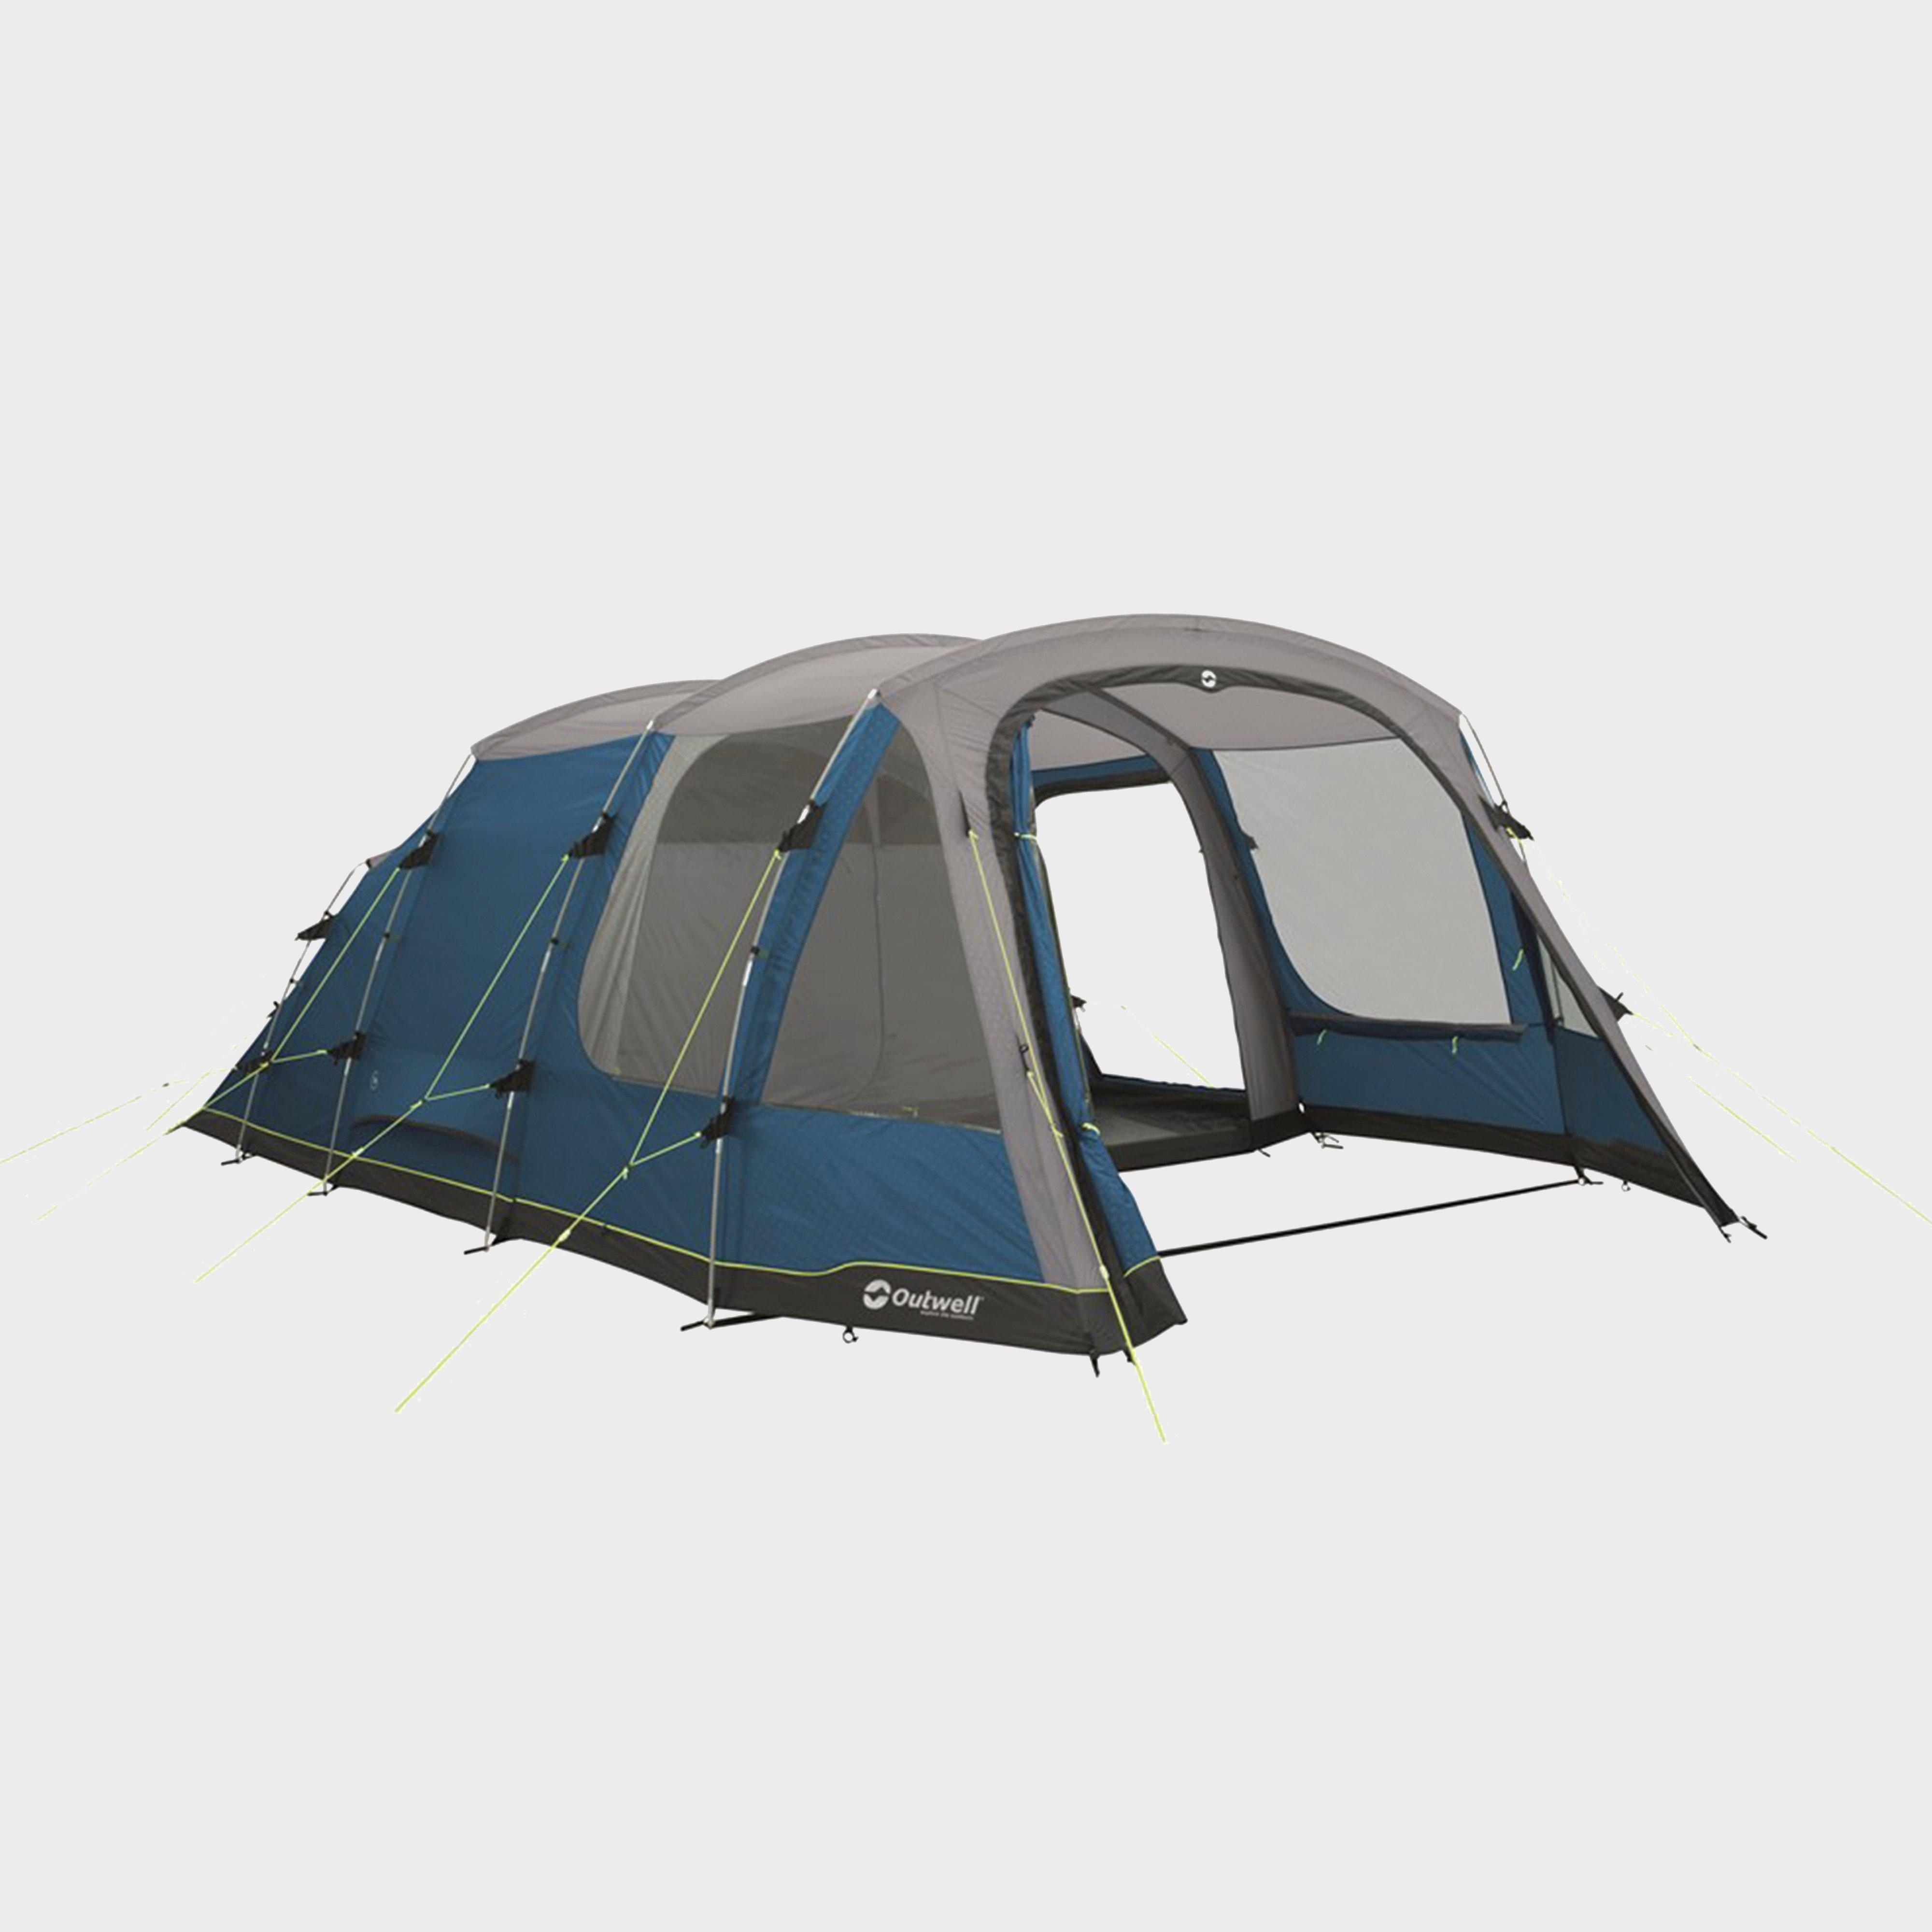 OUTWELL Traverston 5 Tent & Outwell Tents u0026 Camping Equipment | Blacks